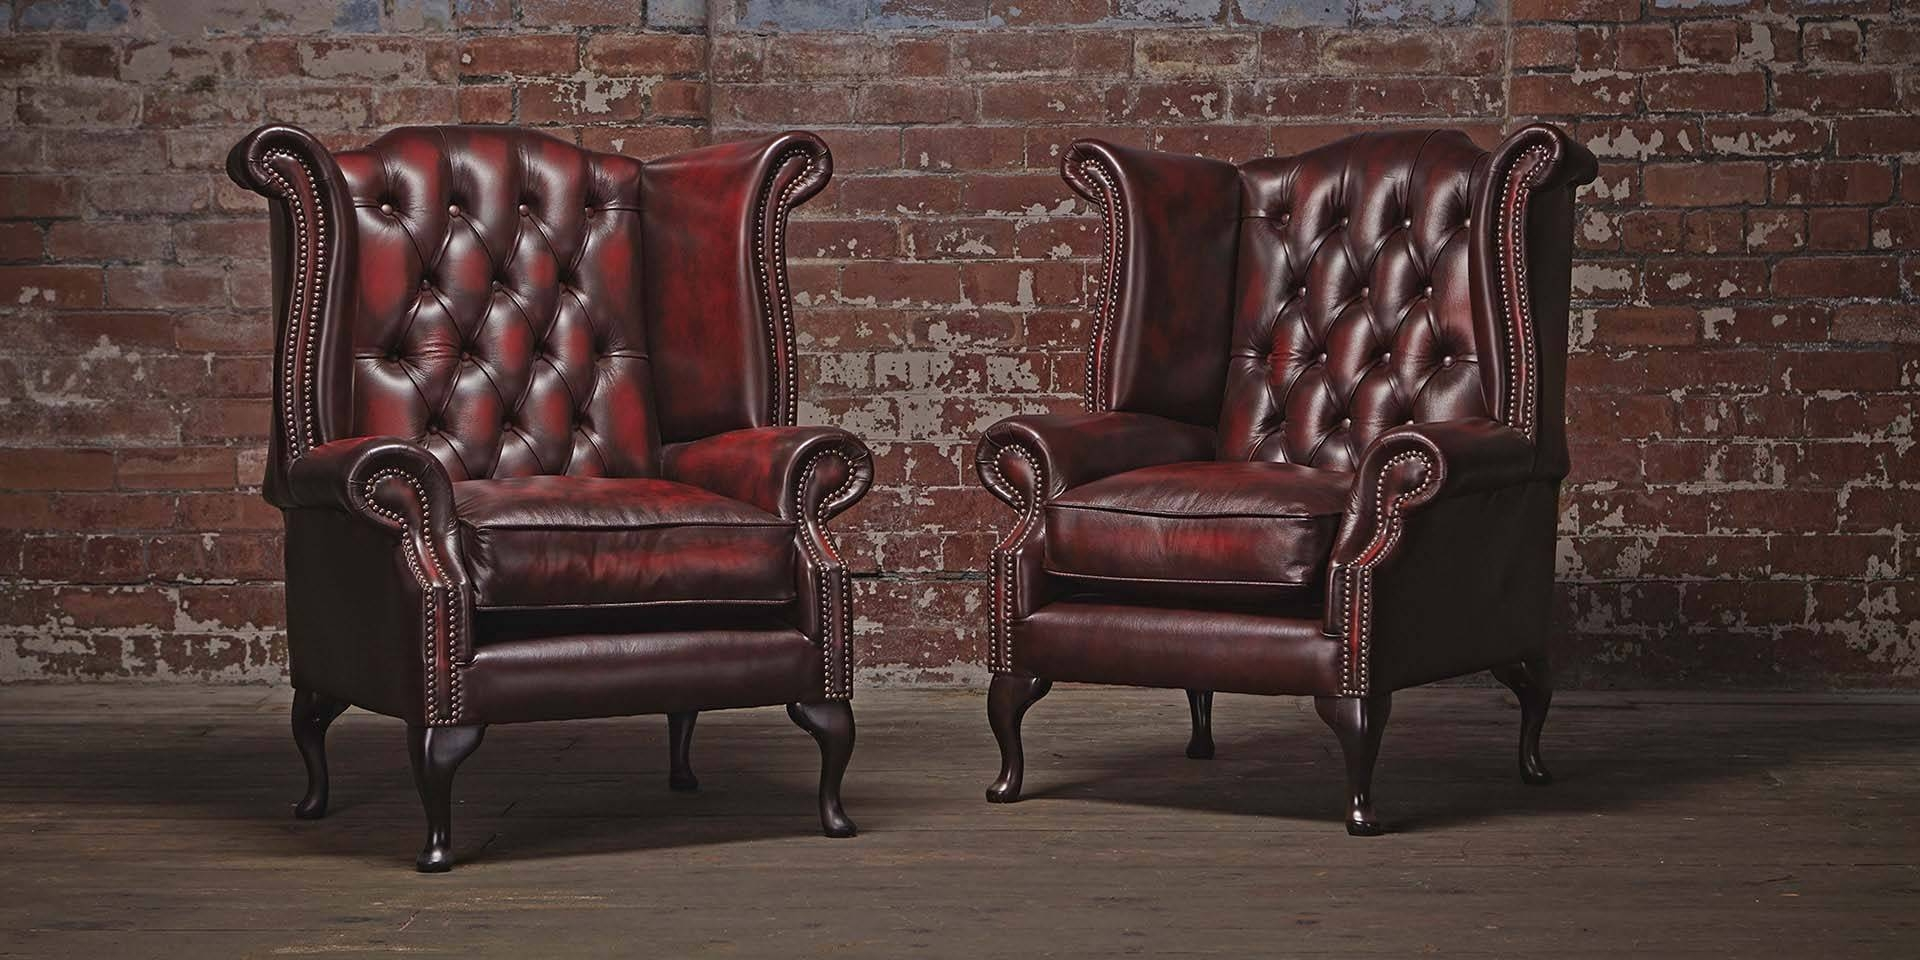 Chesterfields Of England | The Original Chesterfield Company intended for Chesterfield Furniture (Image 18 of 30)